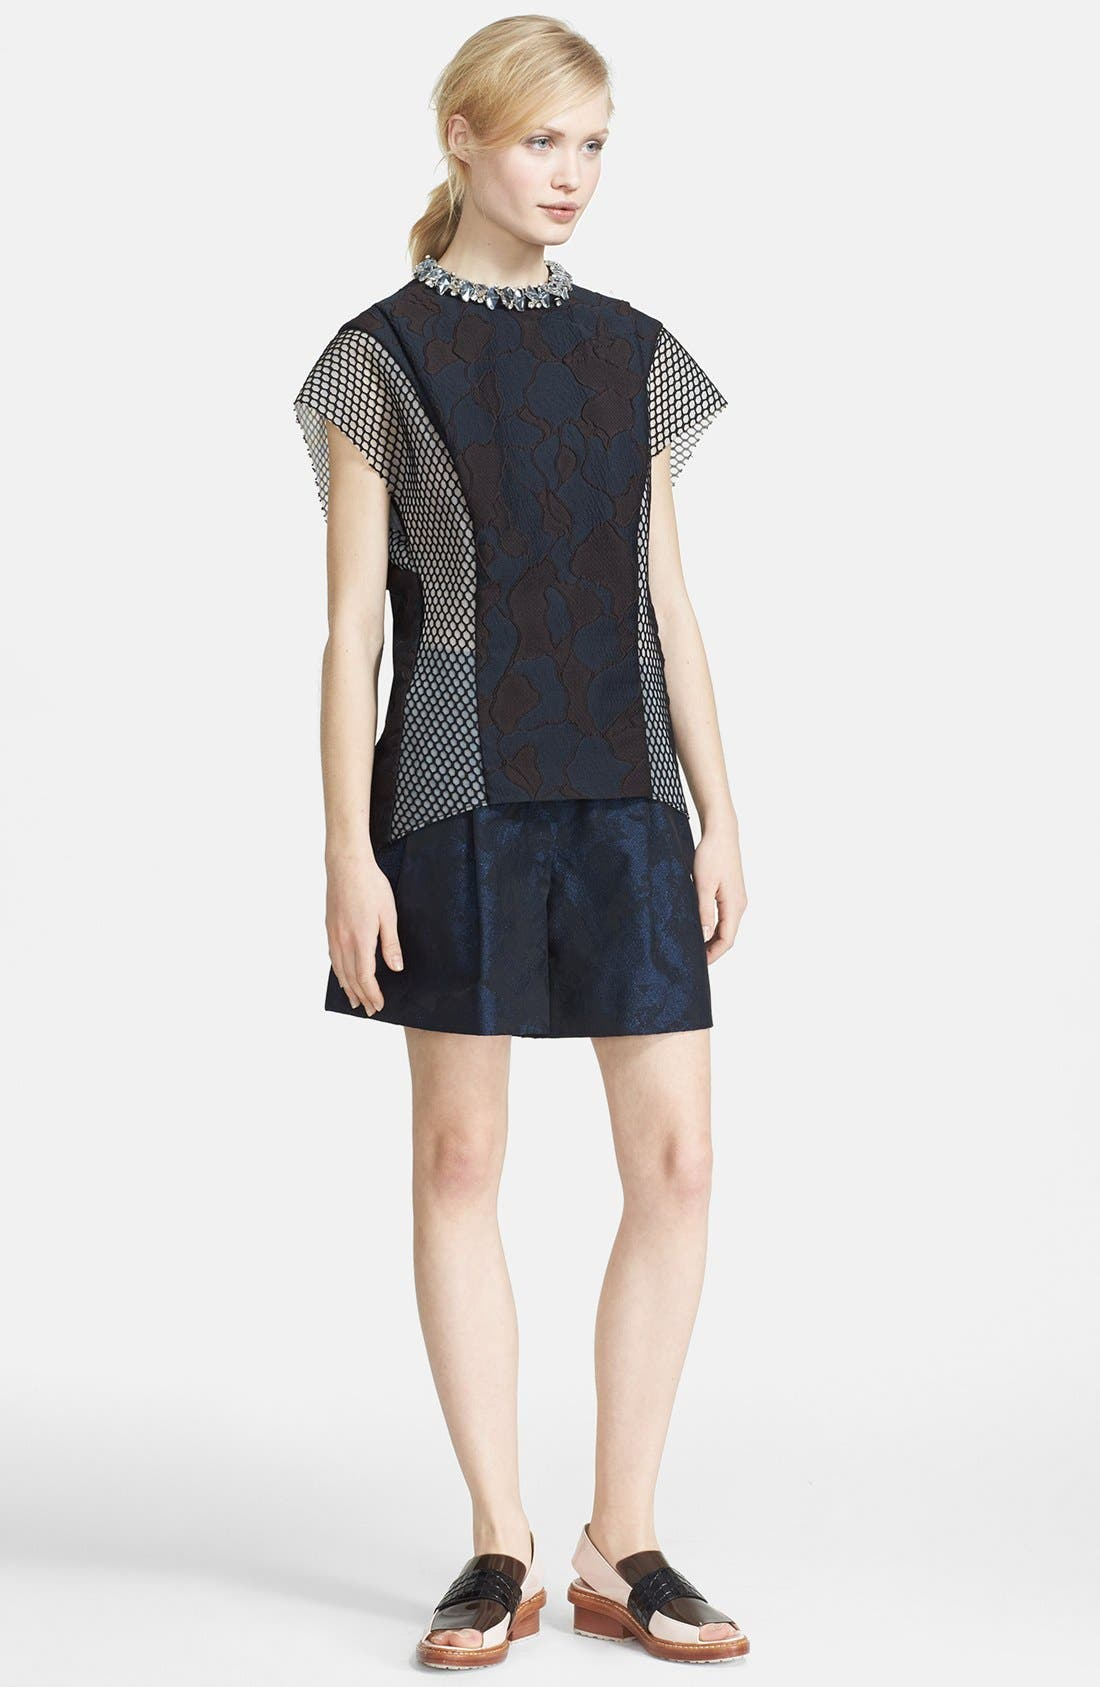 Main Image - 3.1 Philip Lim Top & Jacquard Shorts